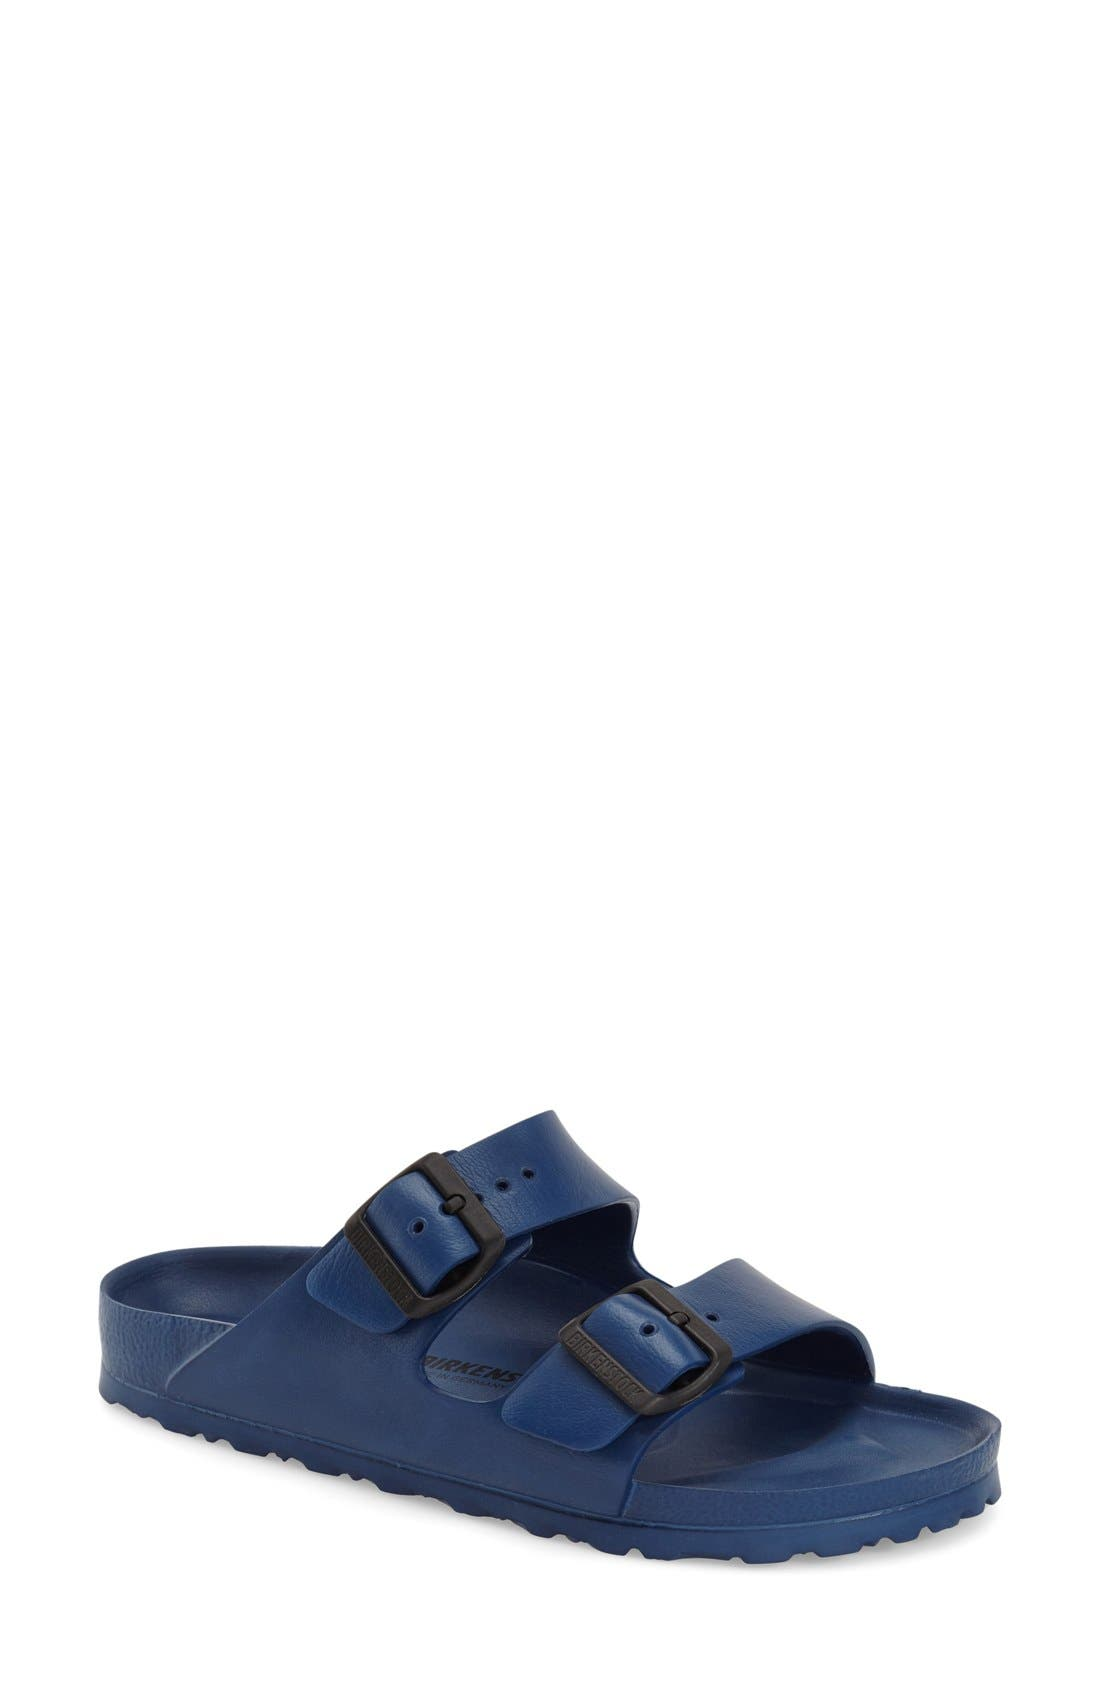 Main Image - Birkenstock Essentials - Arizona Slide Sandal (Women) (Nordstrom Exclusive)